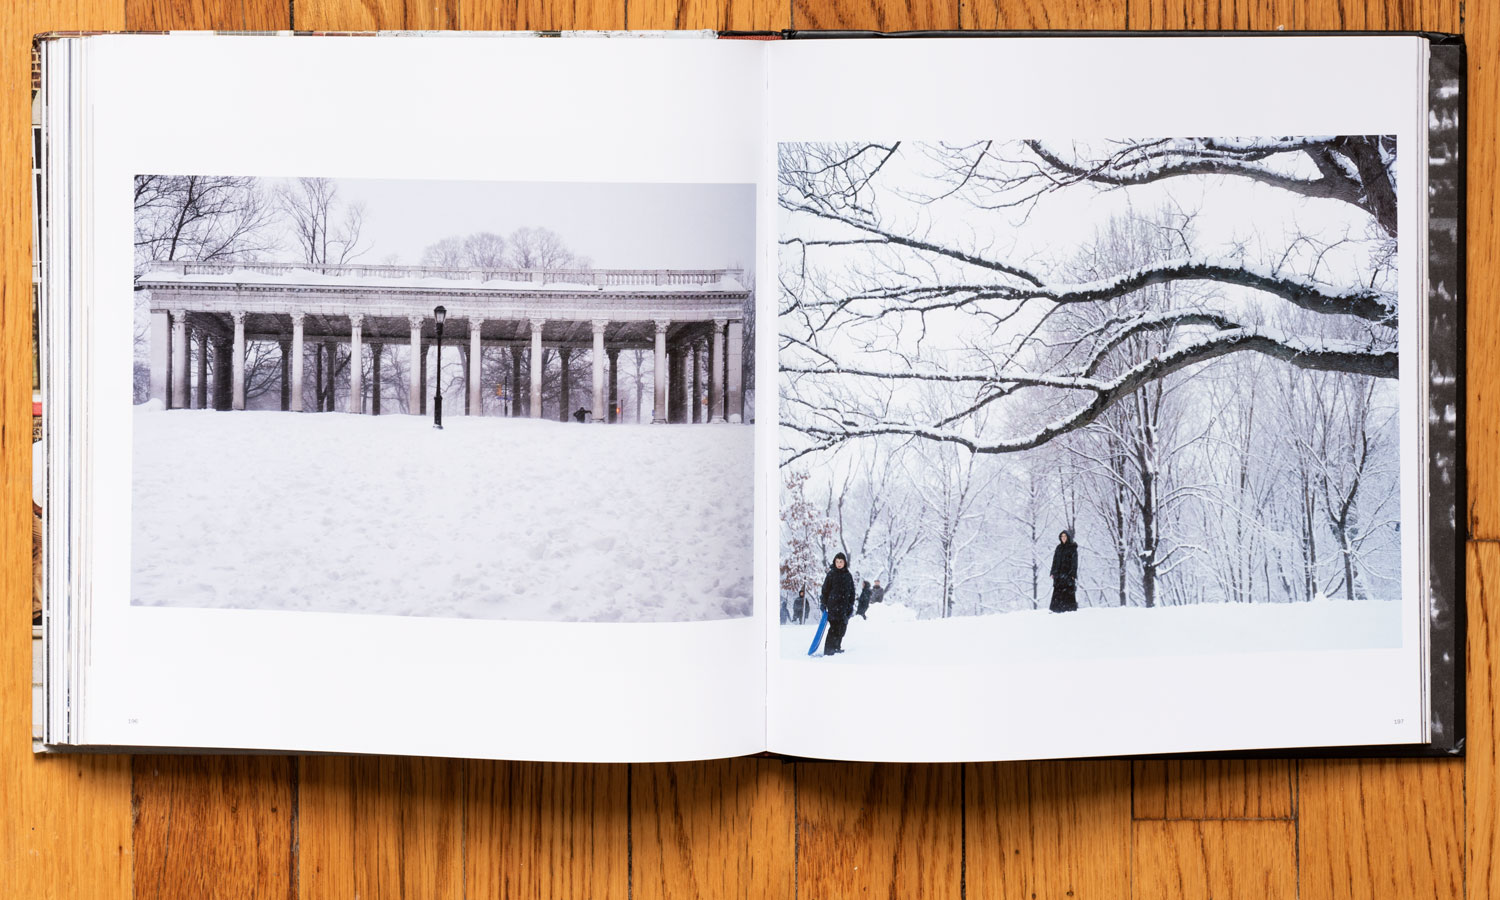 The Peristyle after the Blizzard  (left). Page 196. © harlan erskine 2018.  Irina Rozovsky , Untitled, from the series In Plain Air, Prospect Park, Brooklyn 2011-2016 (right). Page 197.